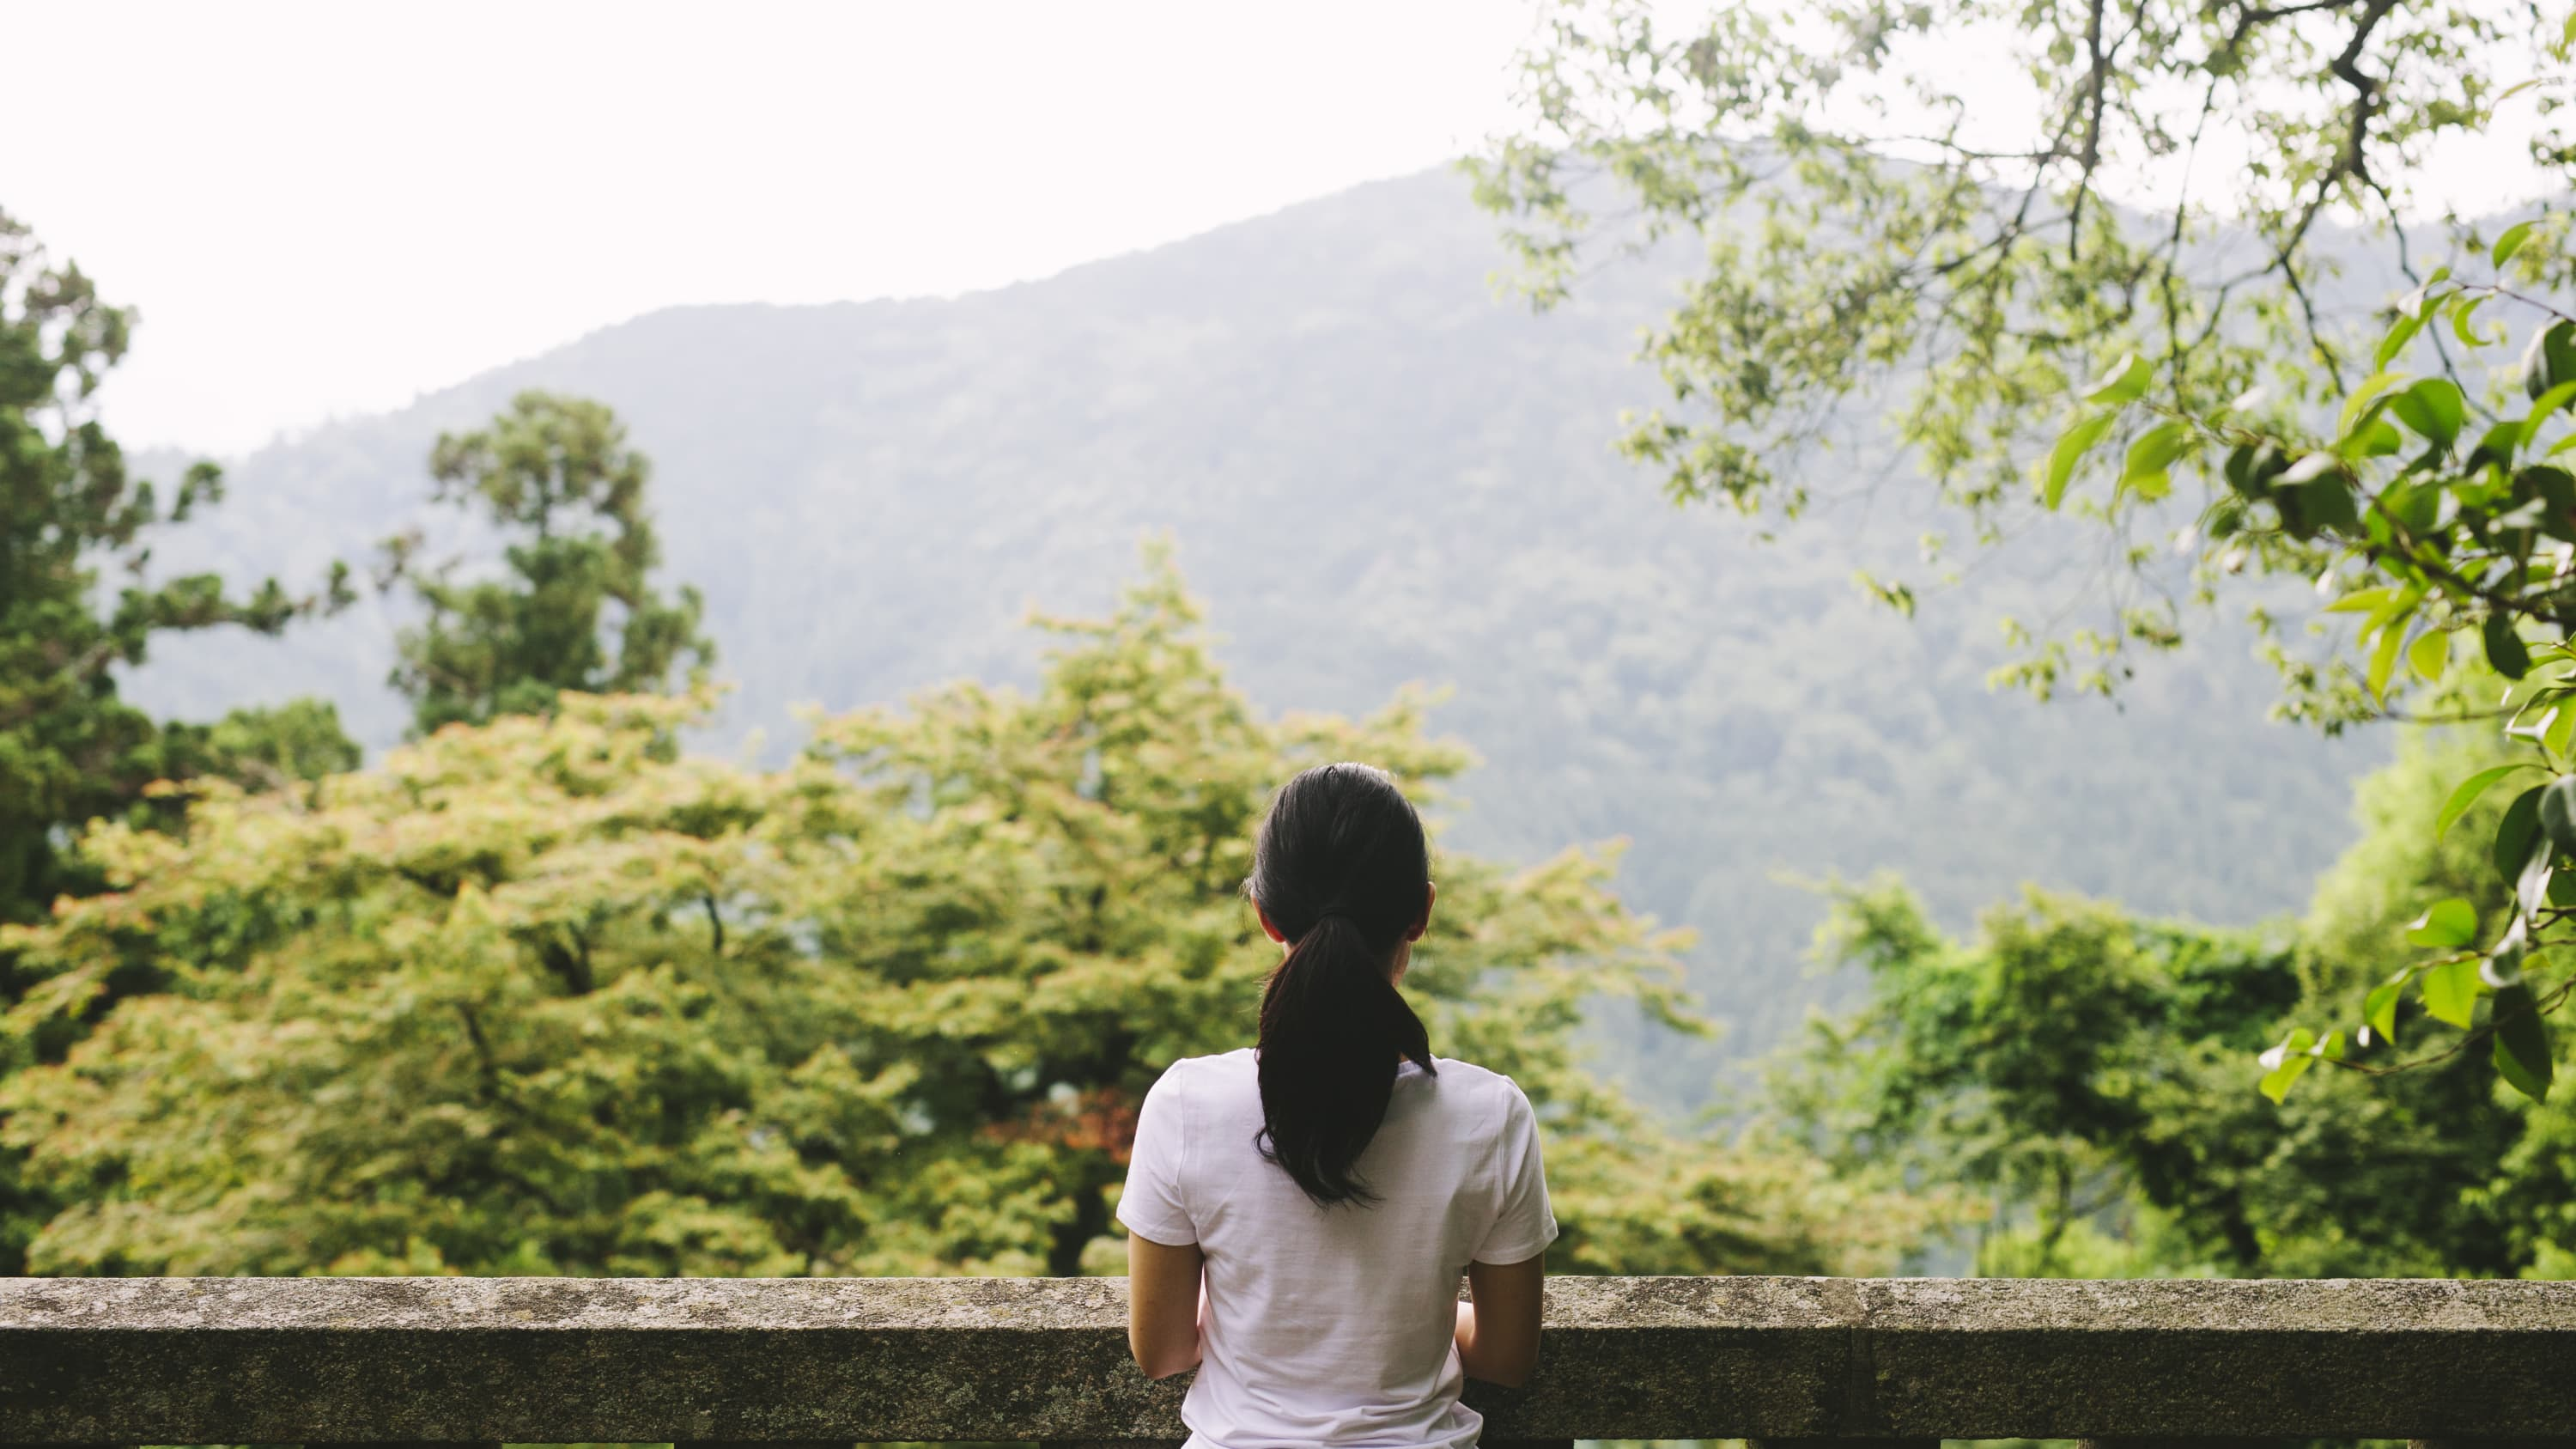 woman contemplating direction in life, especially during a quarter-life crisis